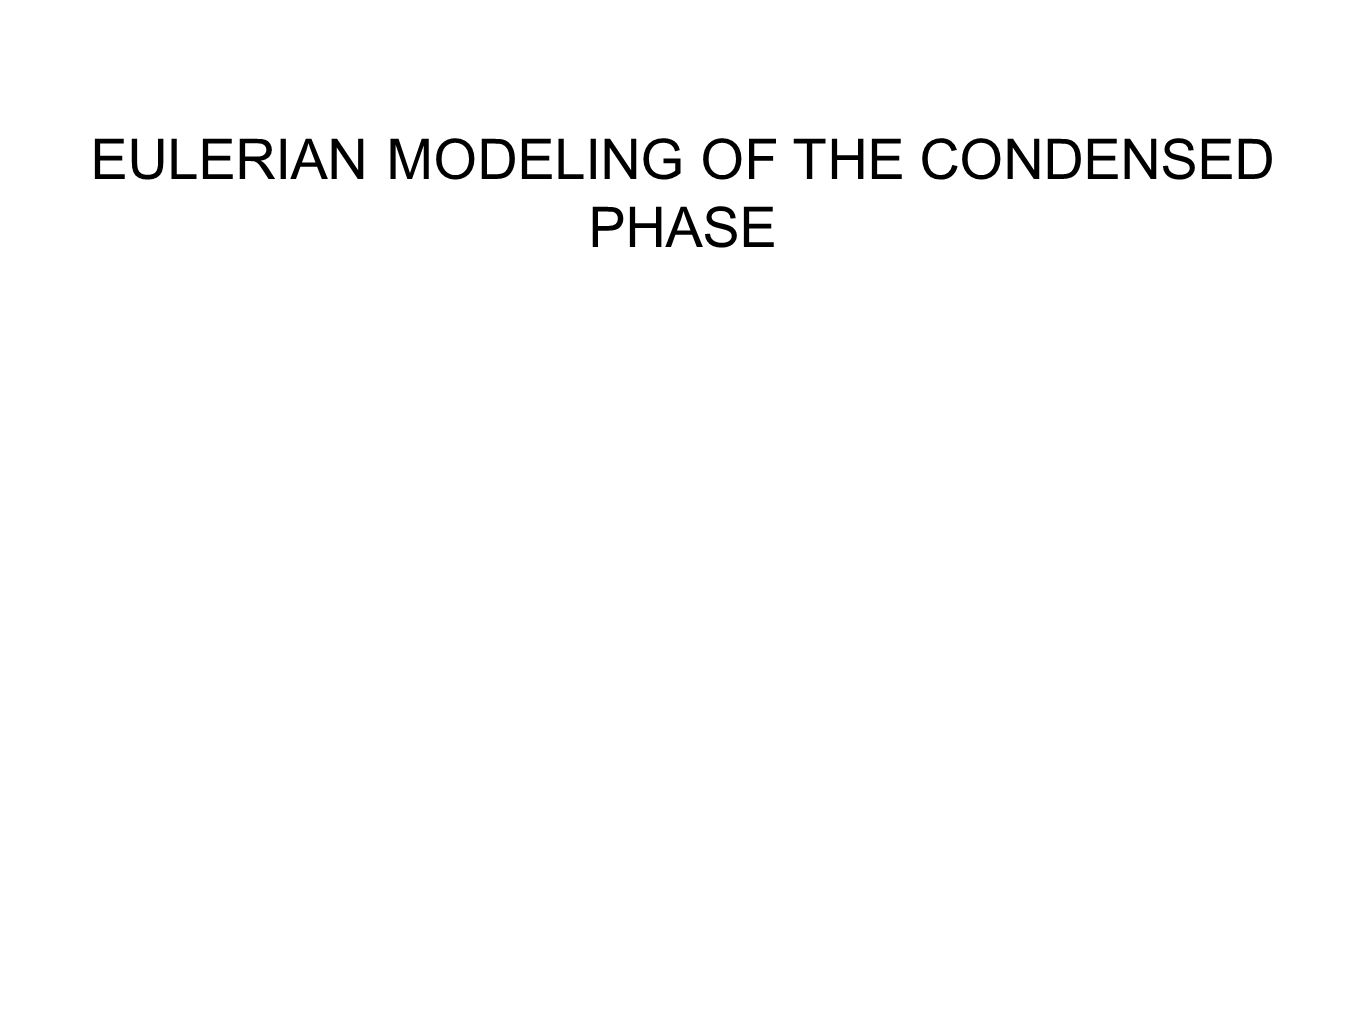 EULERIAN MODELING OF THE CONDENSED PHASE